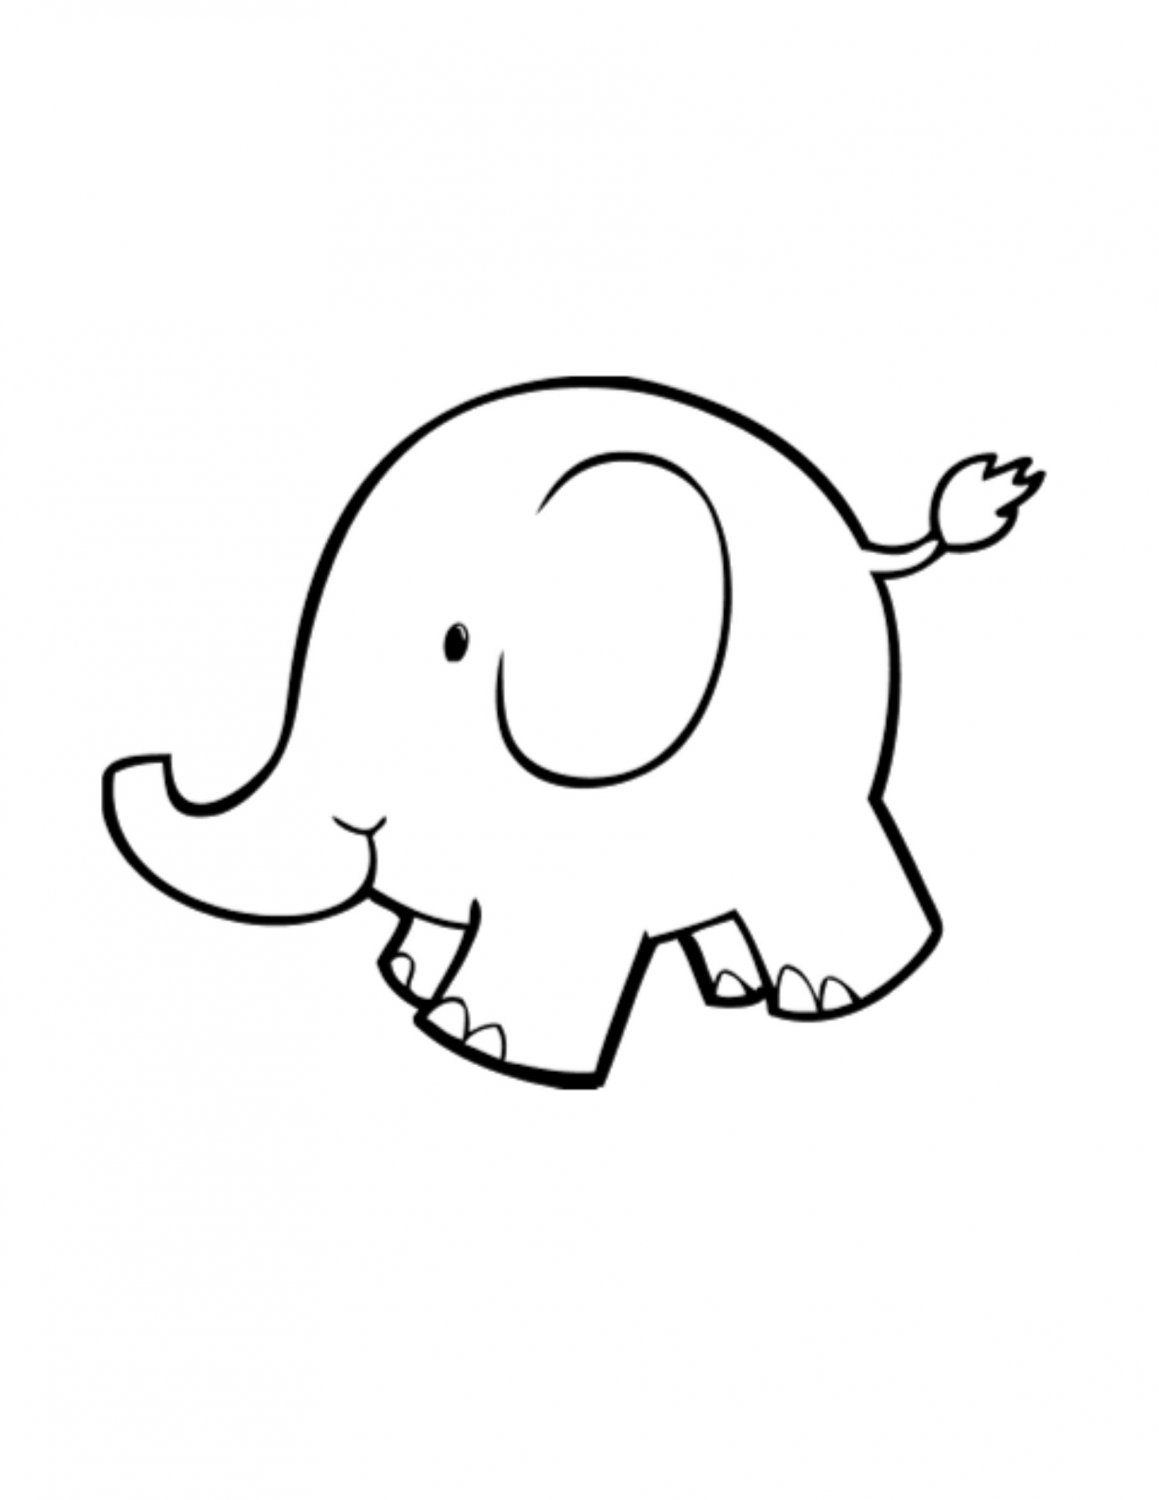 graphic transparent download Clip art library . Baby elephant clipart outline